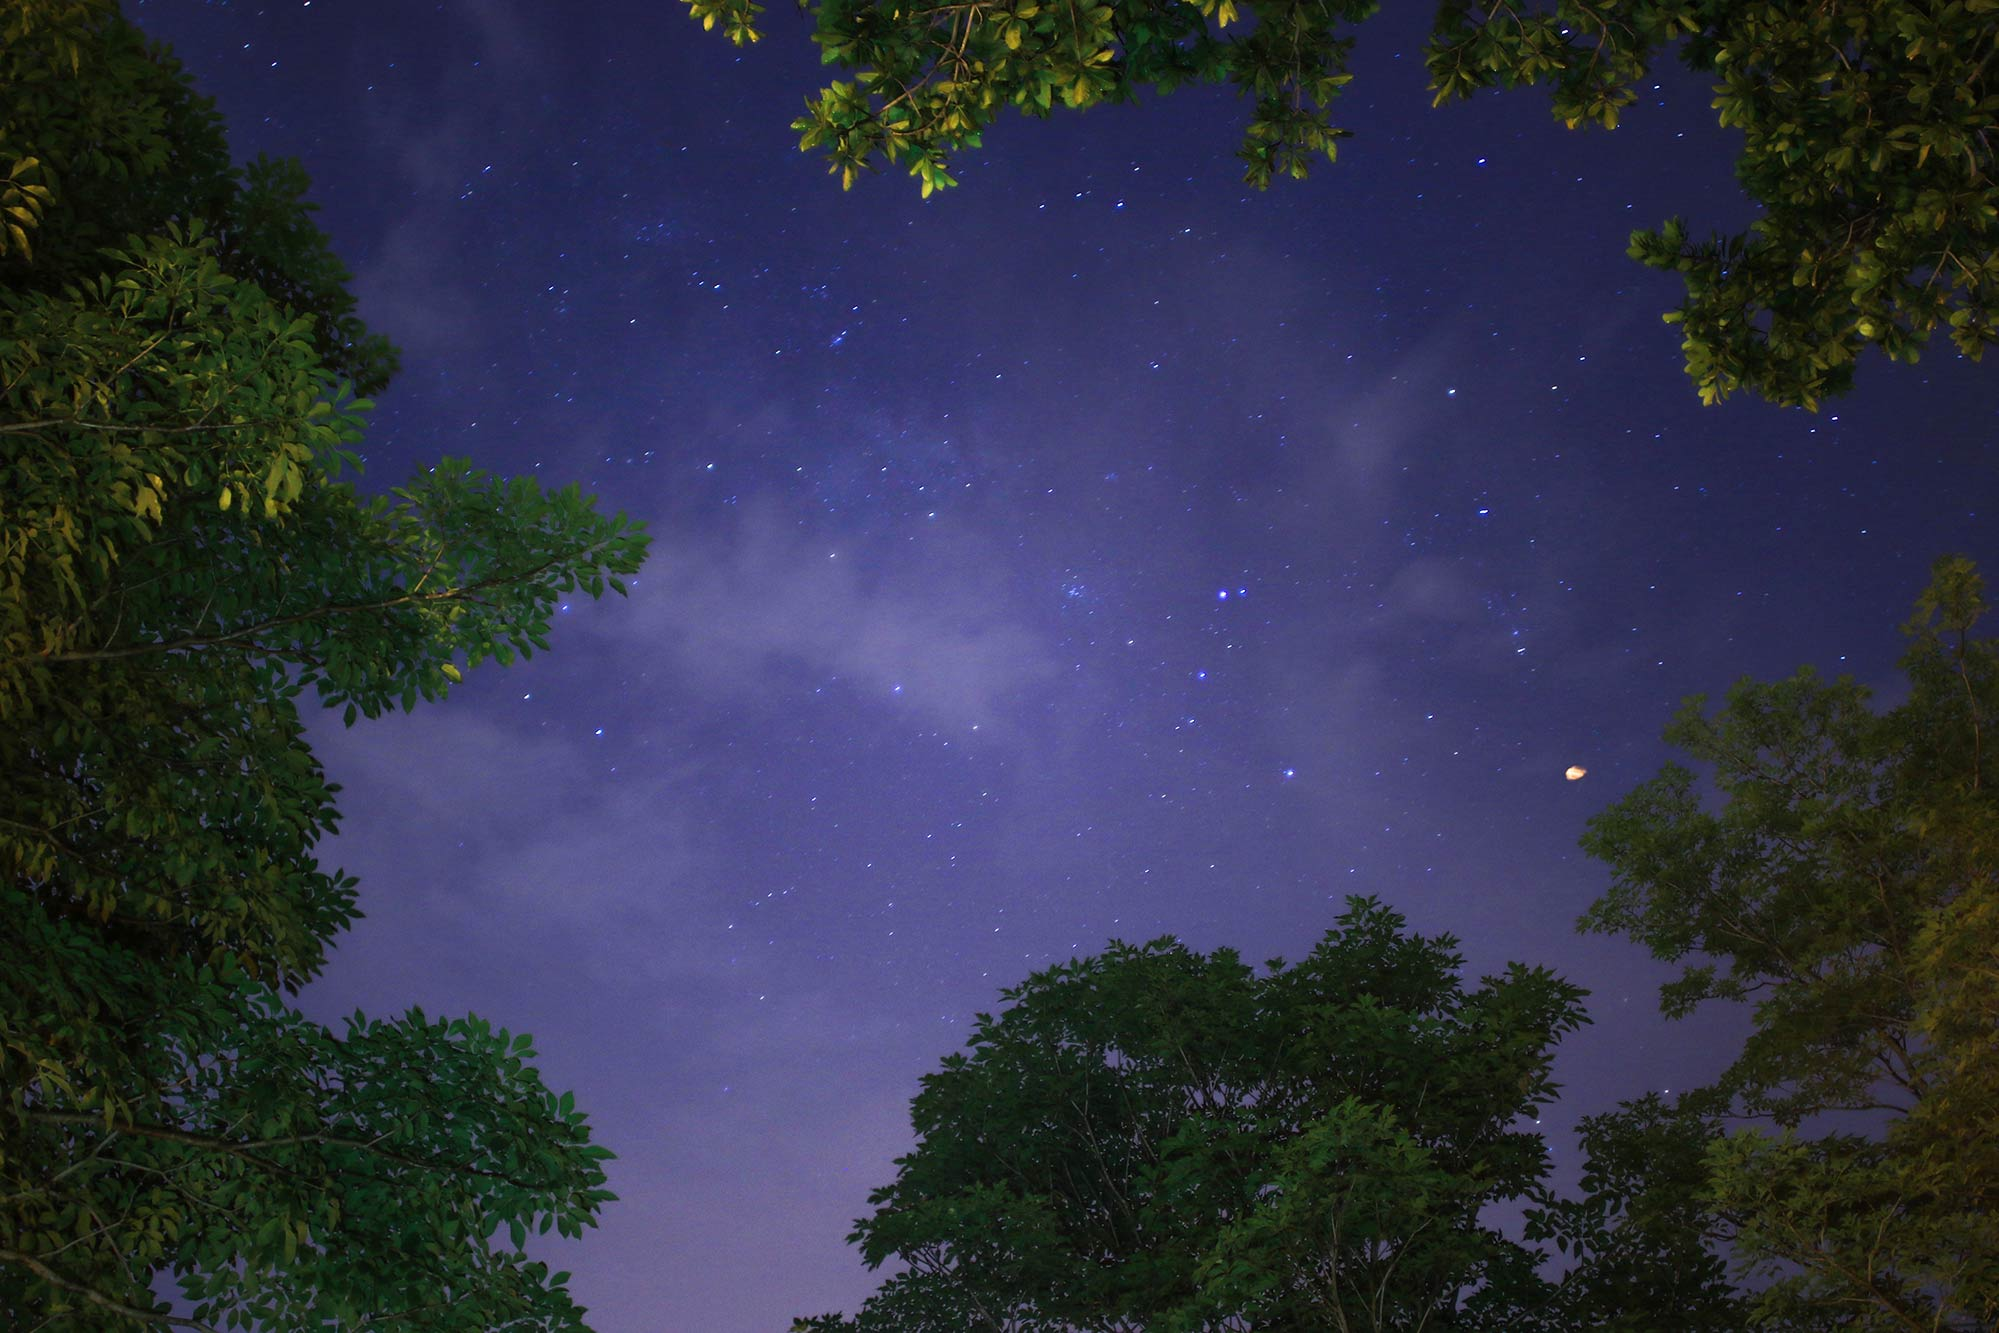 Trees under the stars at night